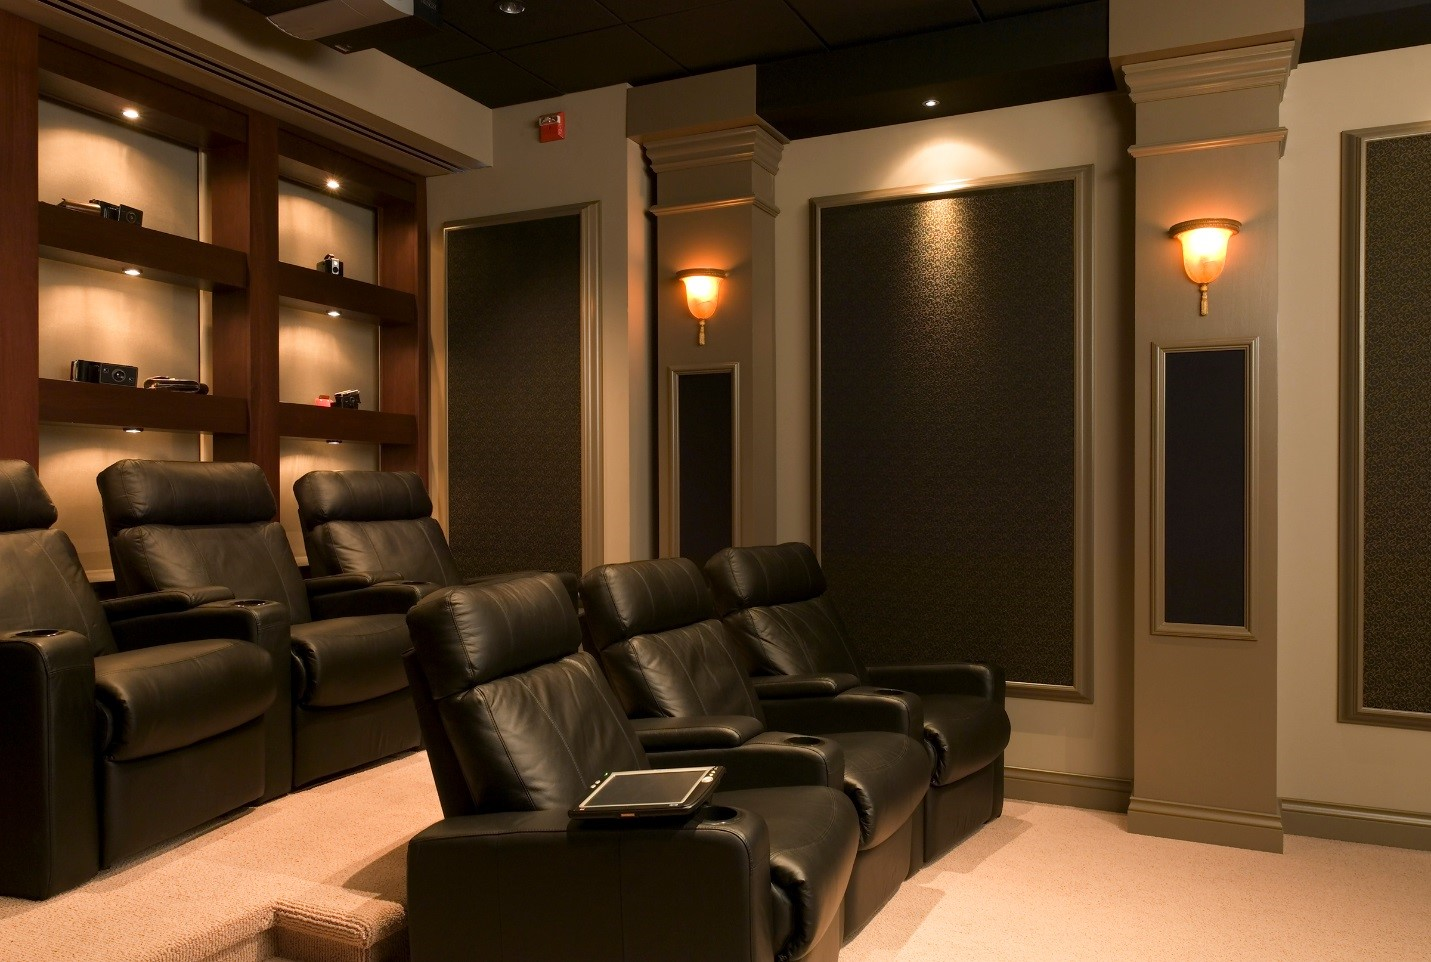 The Most Common (and Avoidable) Home Theater Problem